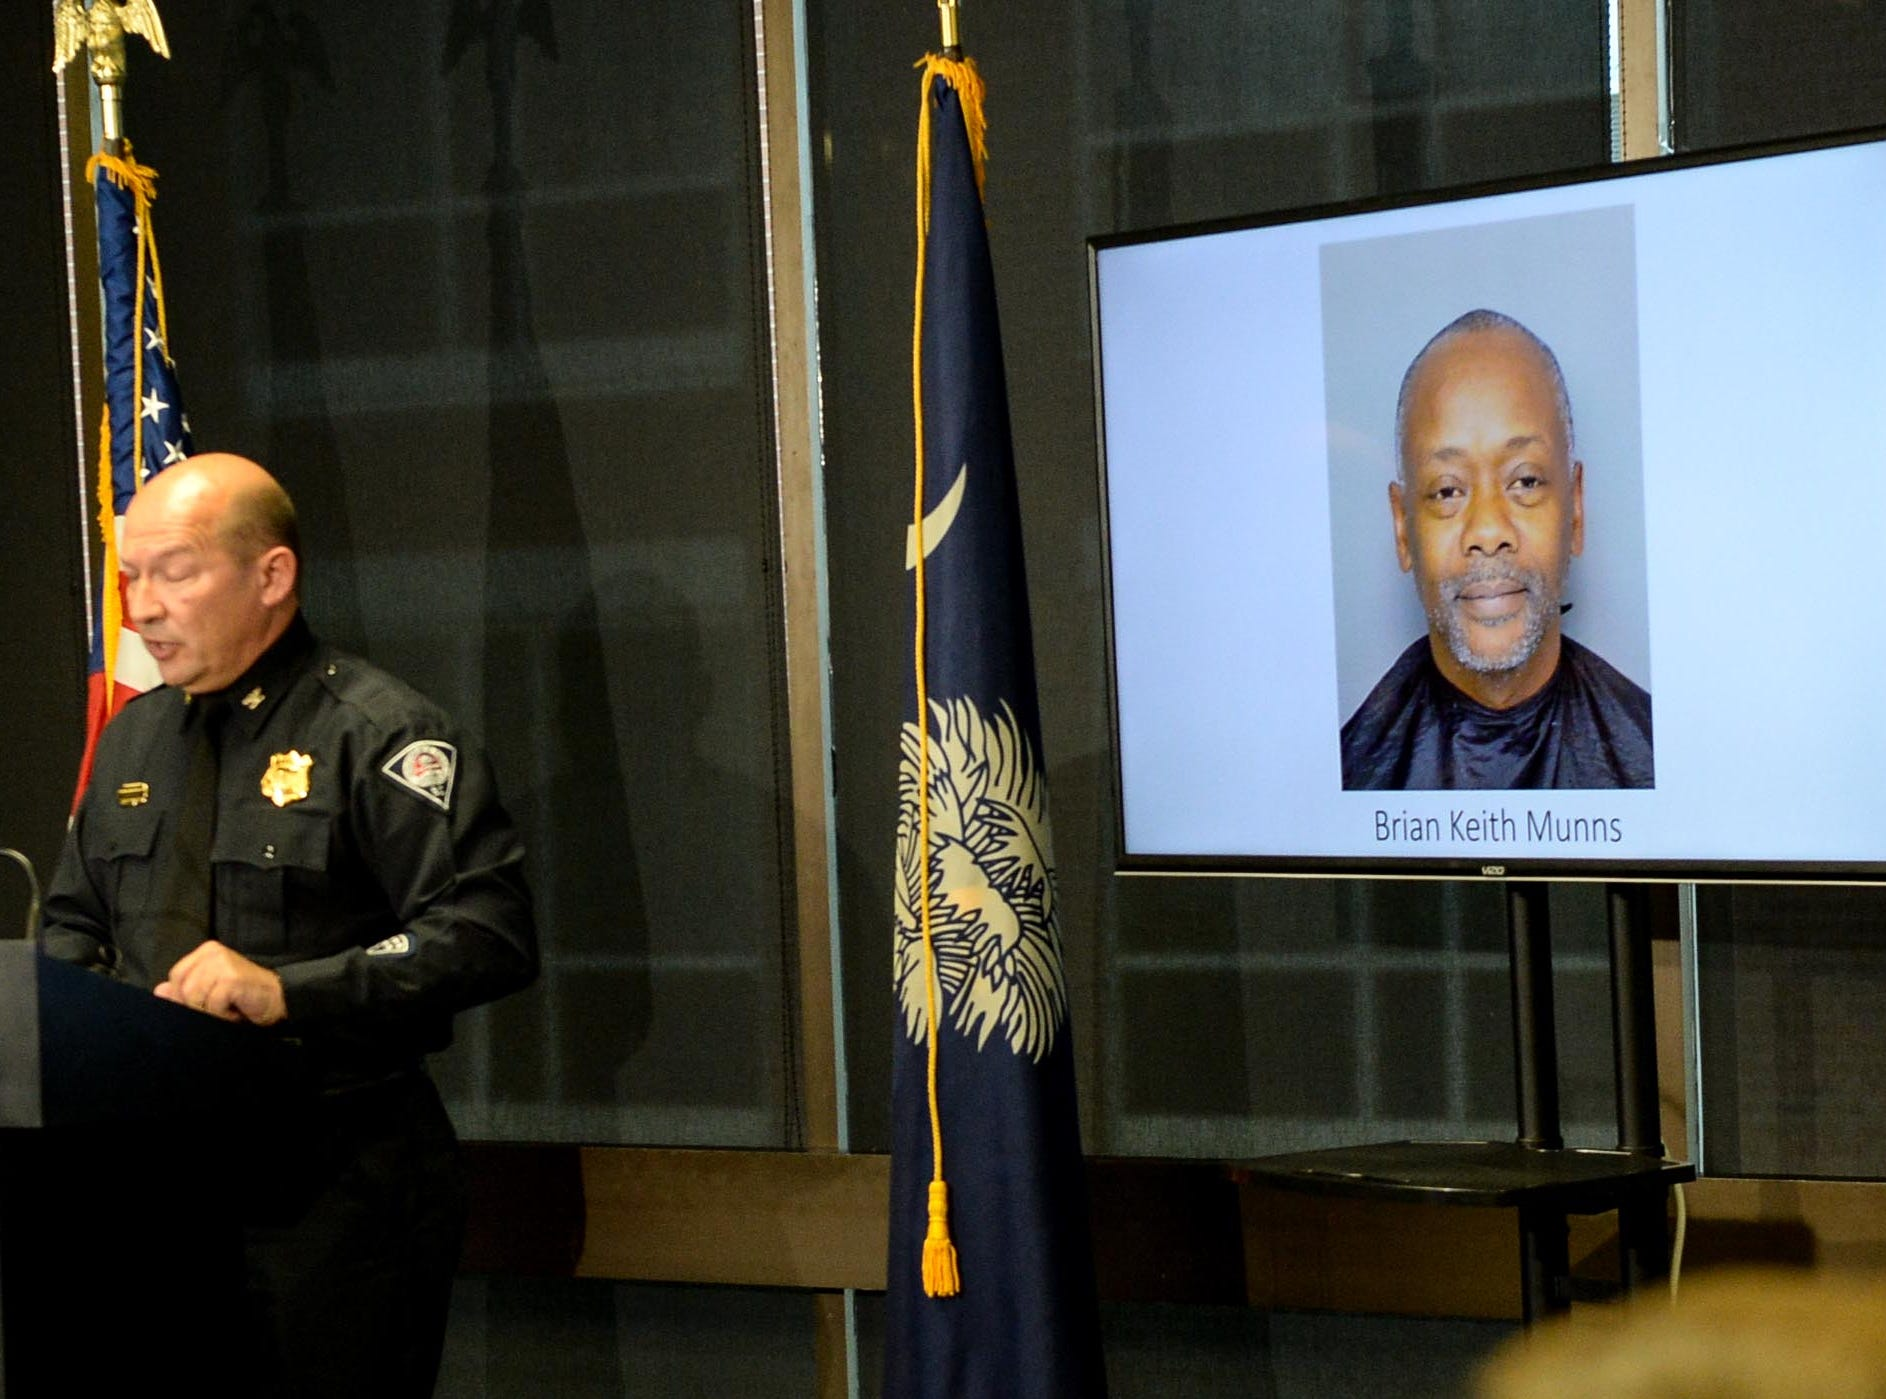 A Greenville police photo of arrested suspect Brian Keith Munns is displayed as police chief Ken Miller talks about an arrest in the 1988 cold case homicide of Alice Haynesworth Ryan, during the announcement at the city police department Monday.